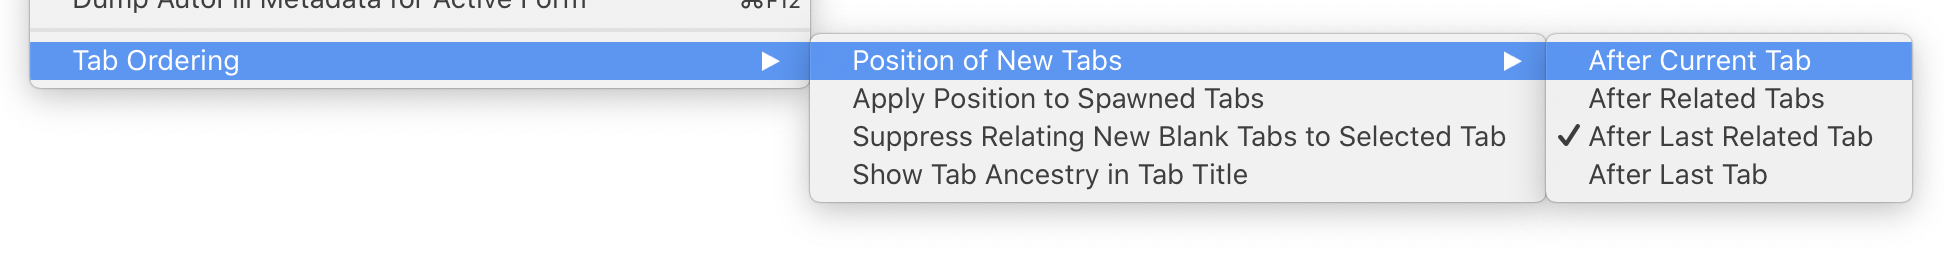 Tab Ordering > Position of New Tabs > After Current Tab